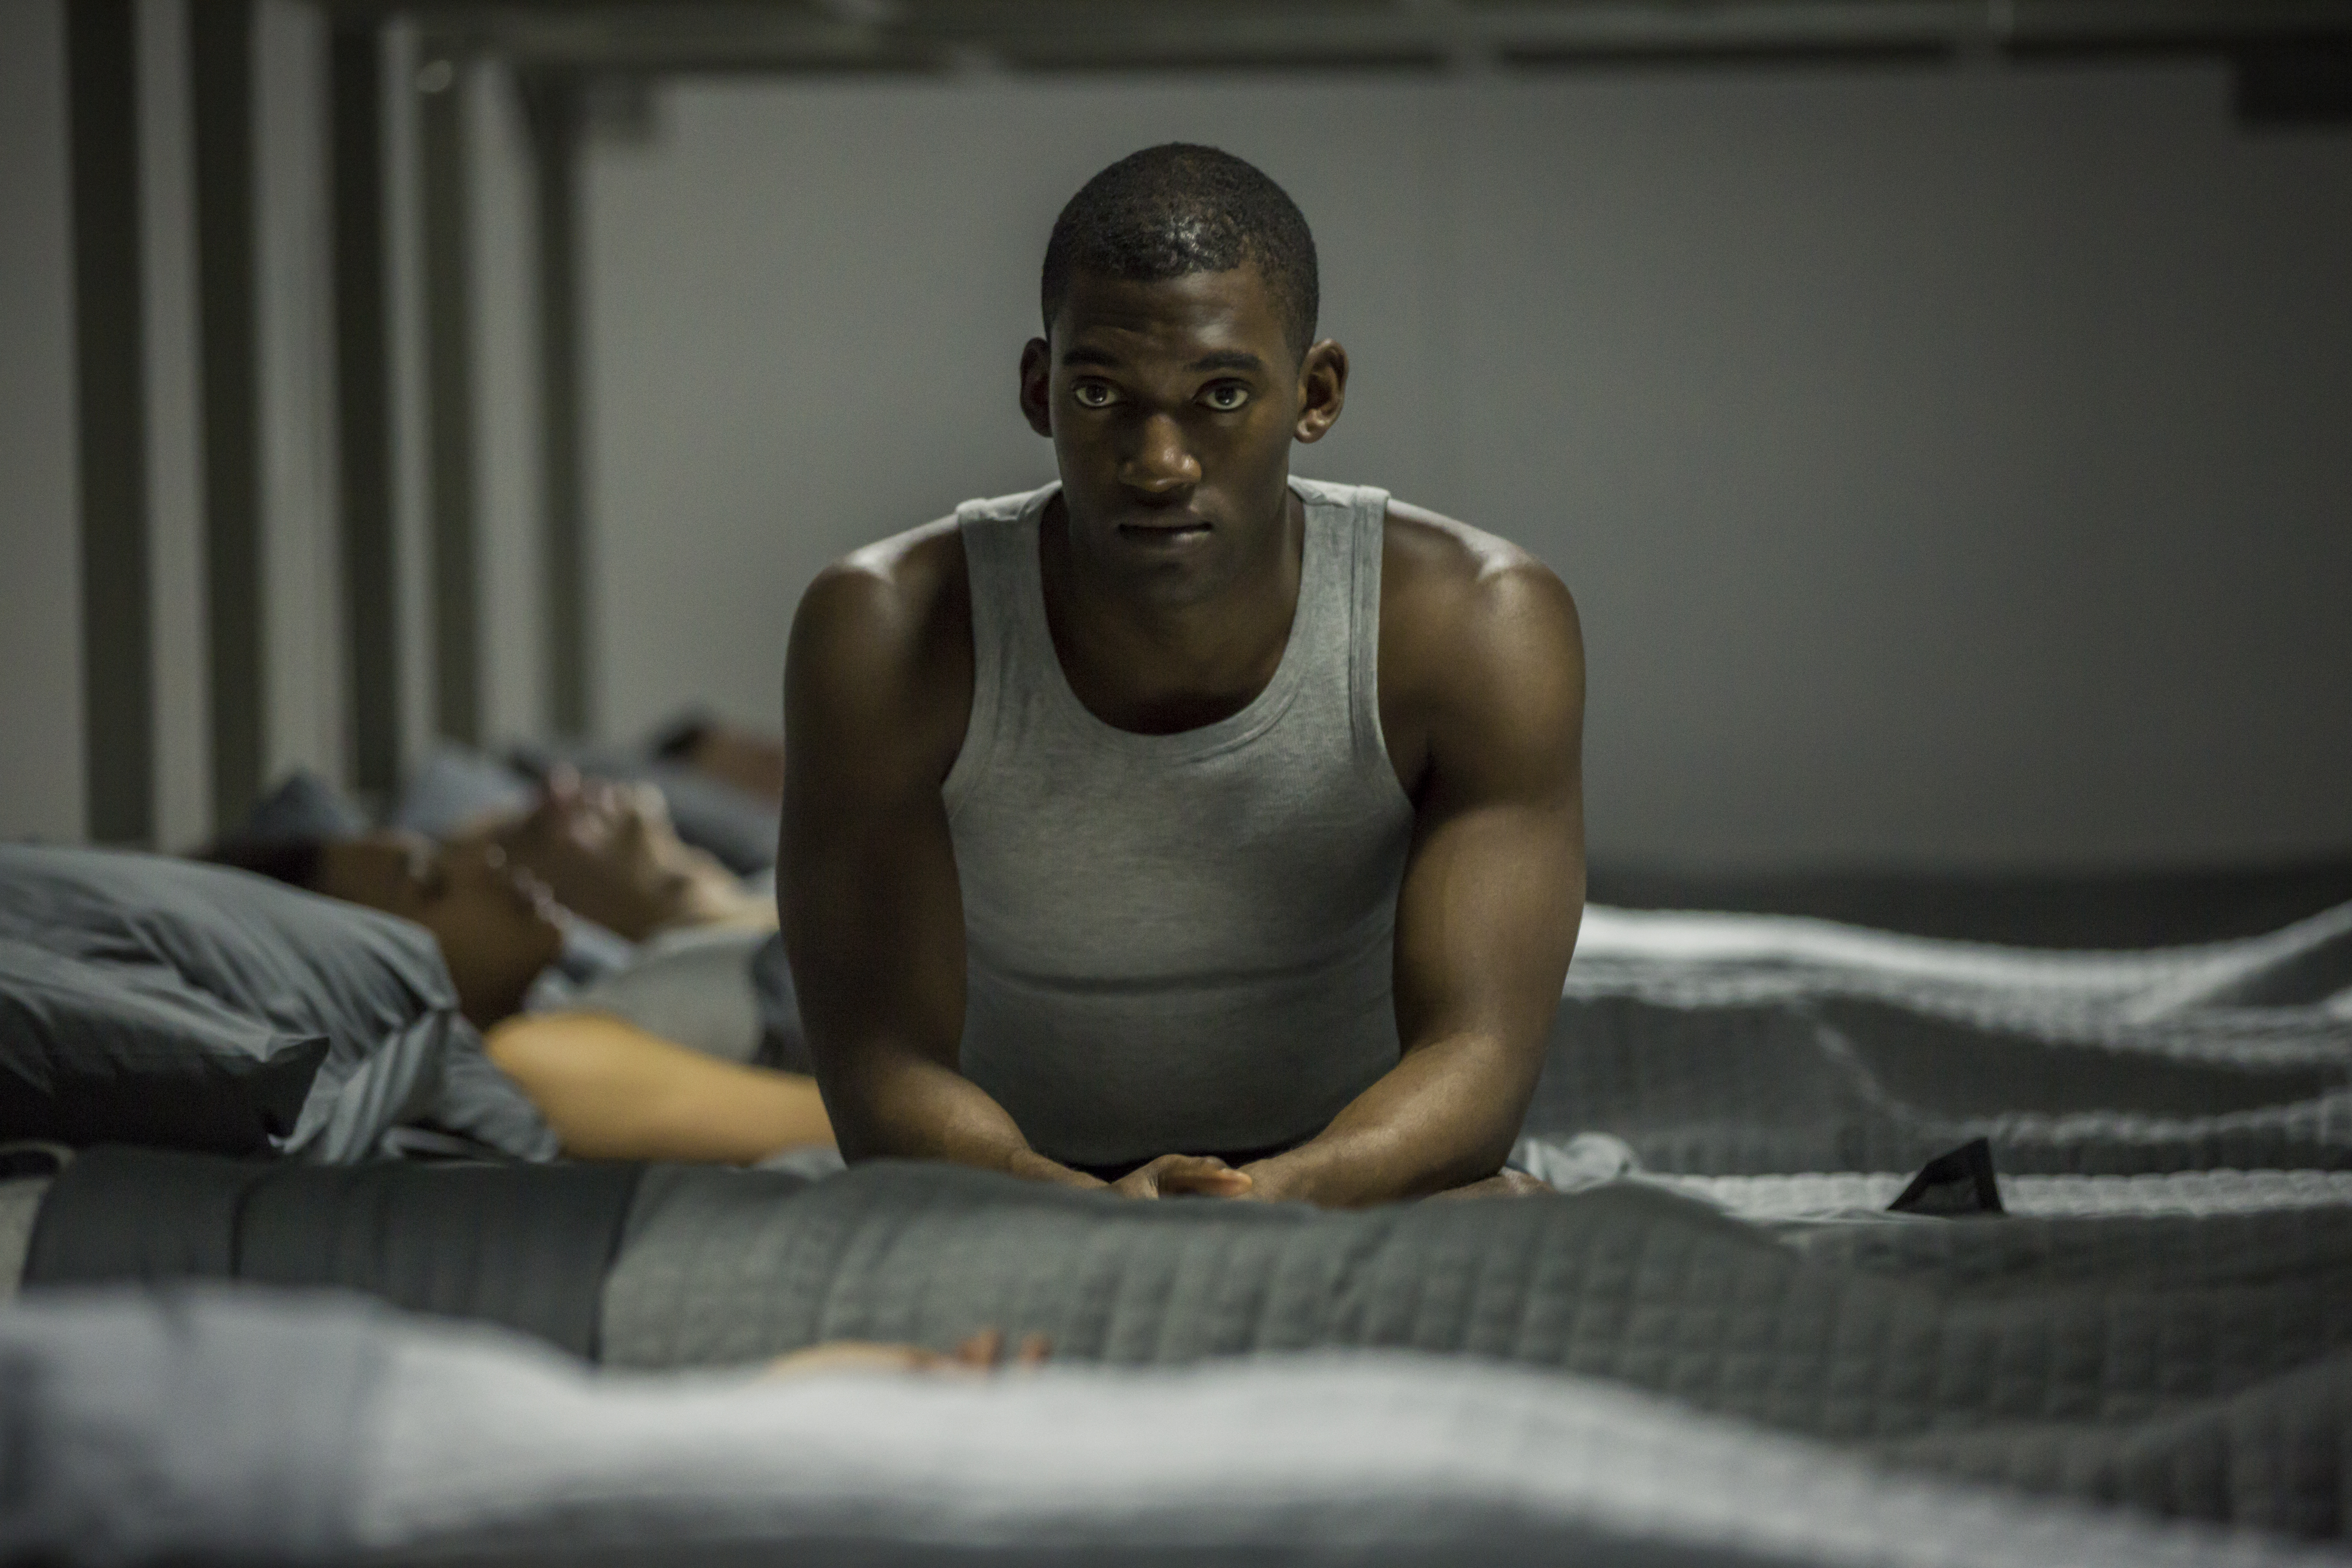 """Malachi Kirby sits on a bed in the Black Mirror episode """"Men Against Fire."""""""